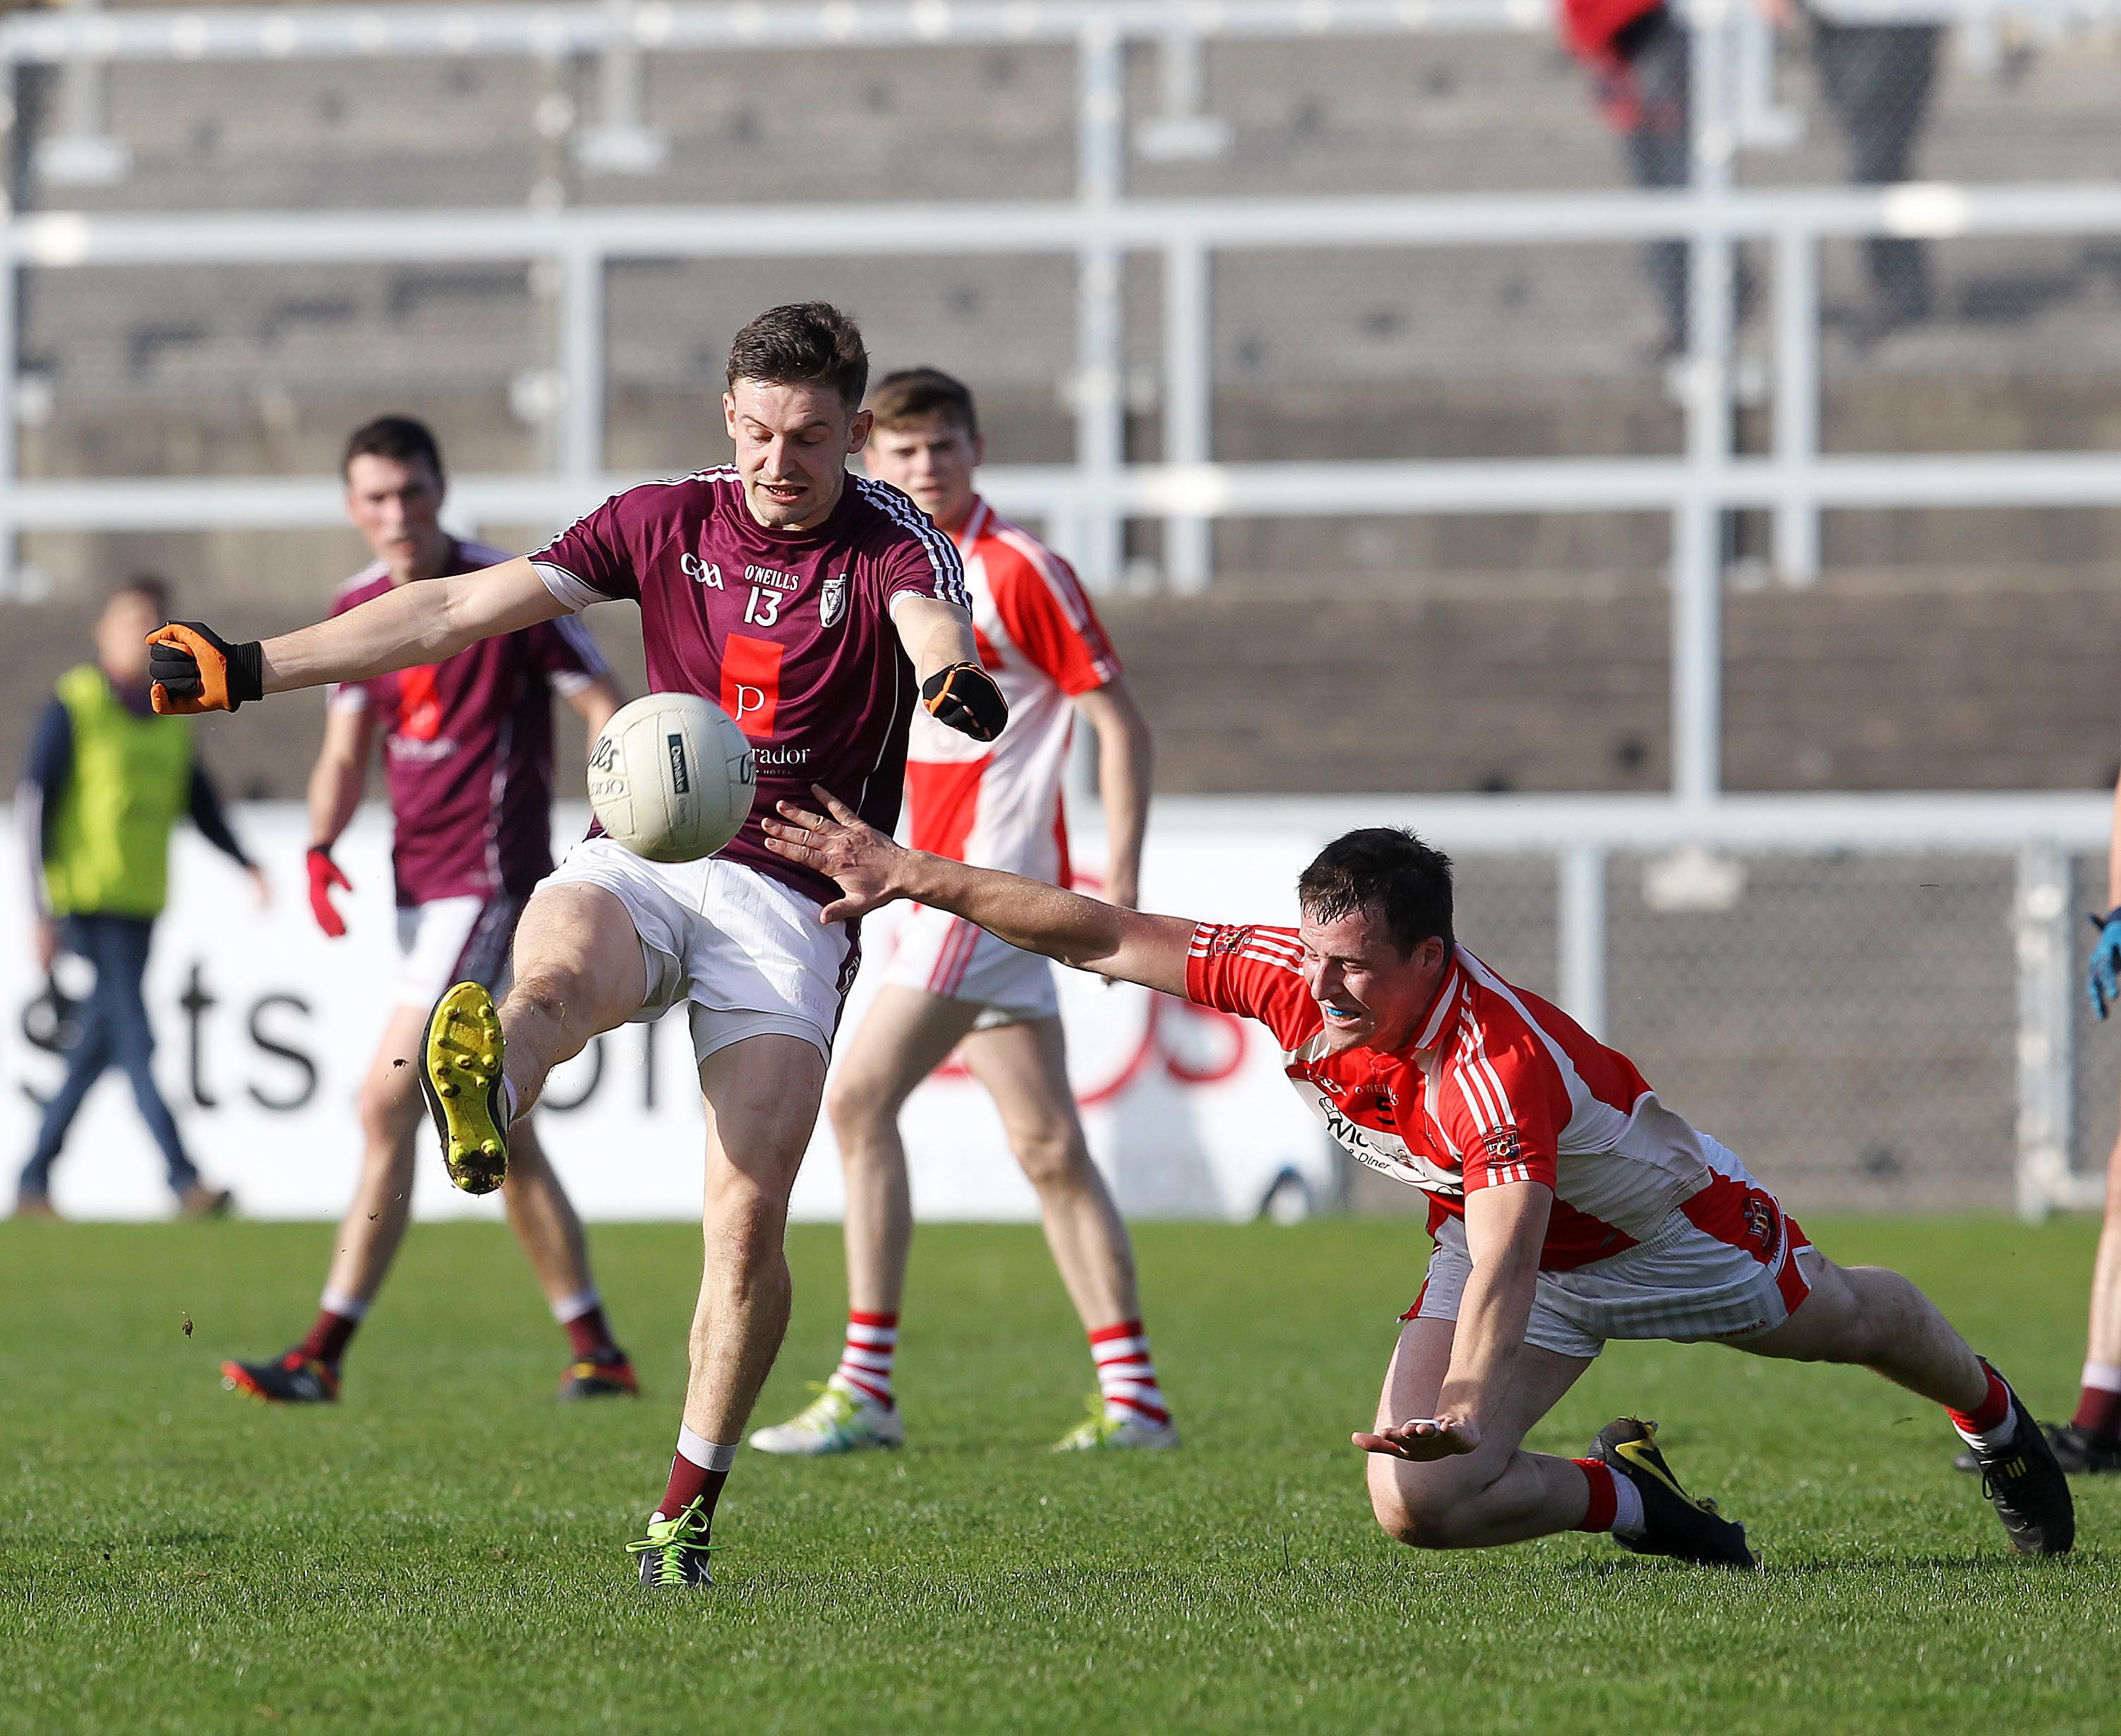 Donaghmoyne Win After Extra Time